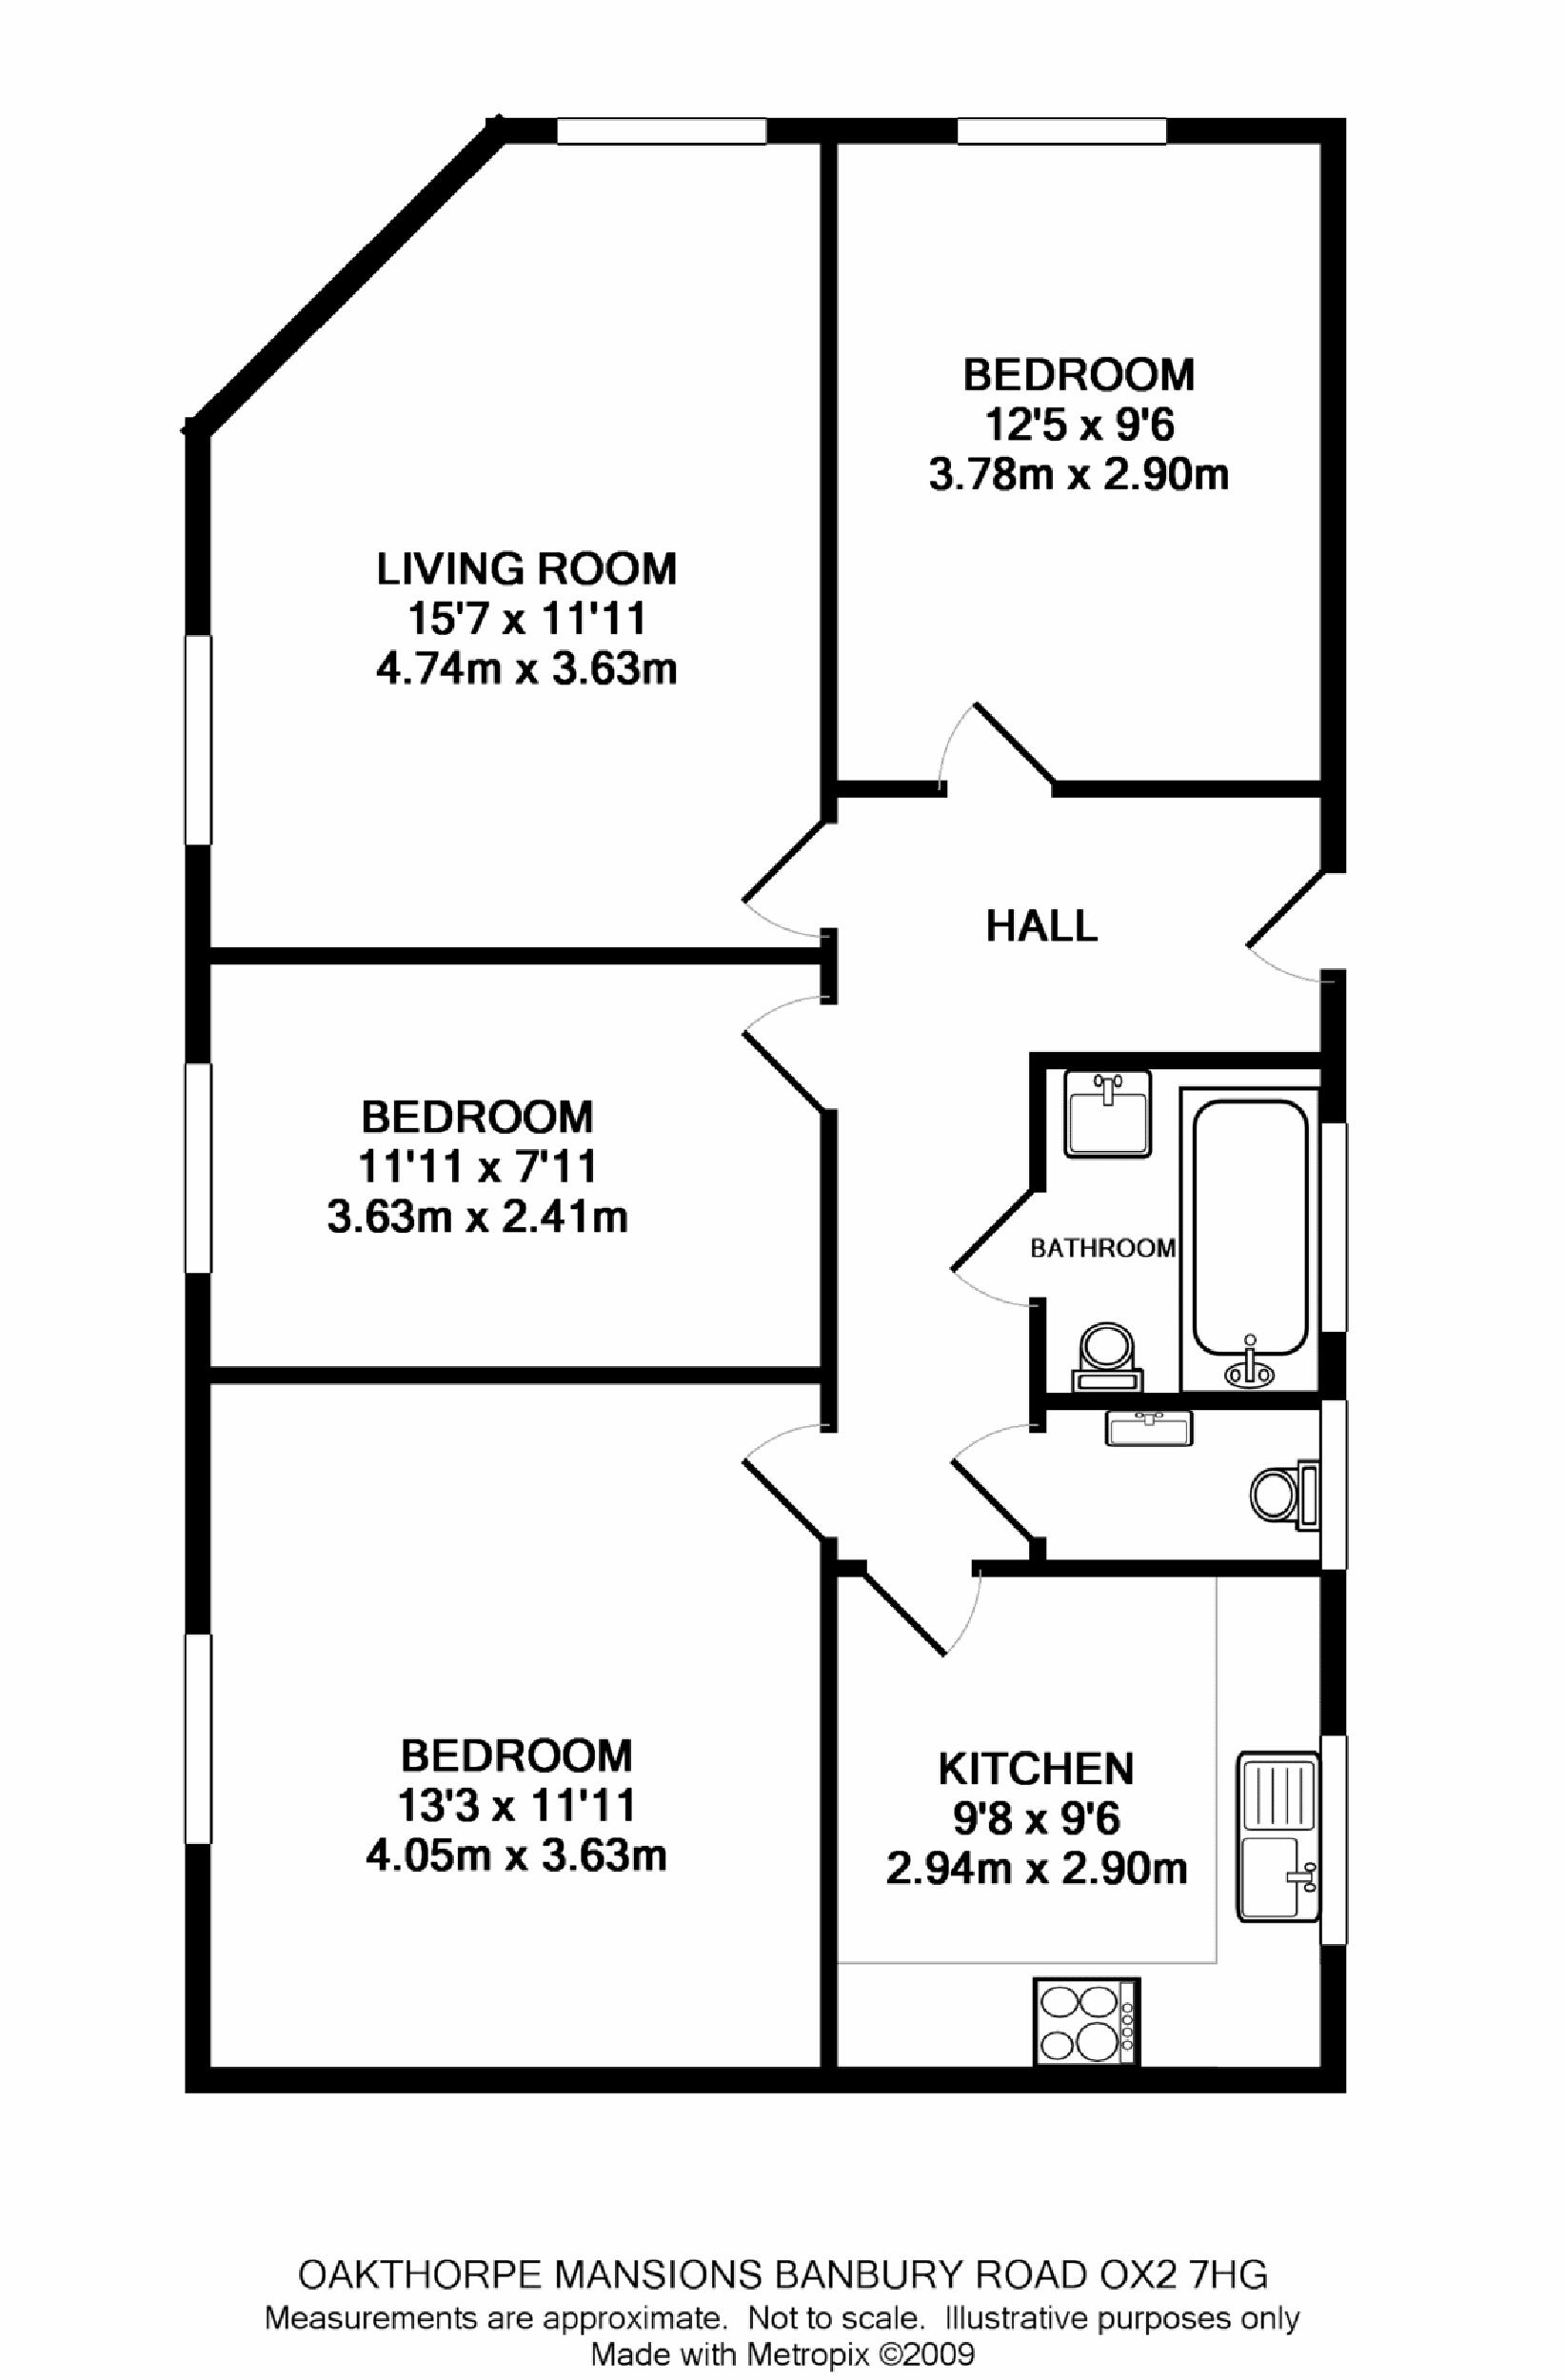 Oakthorpe mansions summertown ox2 ref 3473 oxford for 3 room flat floor plan